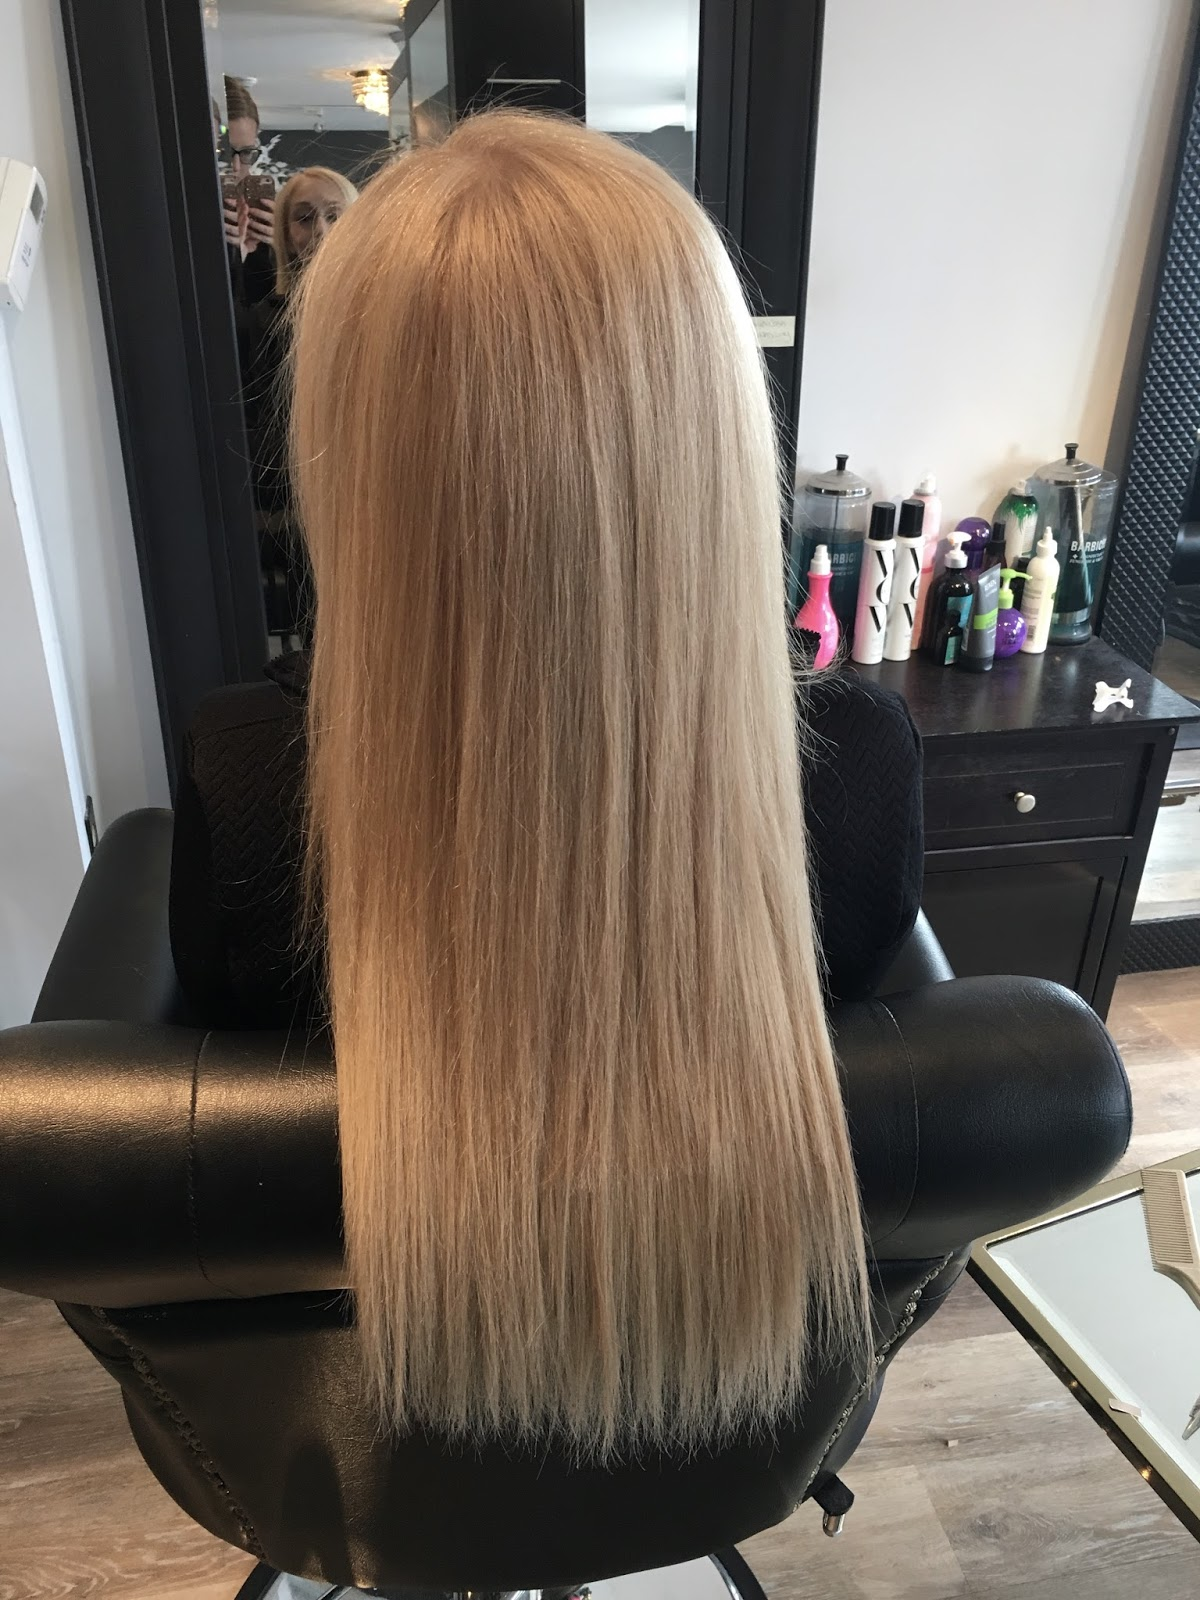 Hair Extensions By Jaclynn Kate